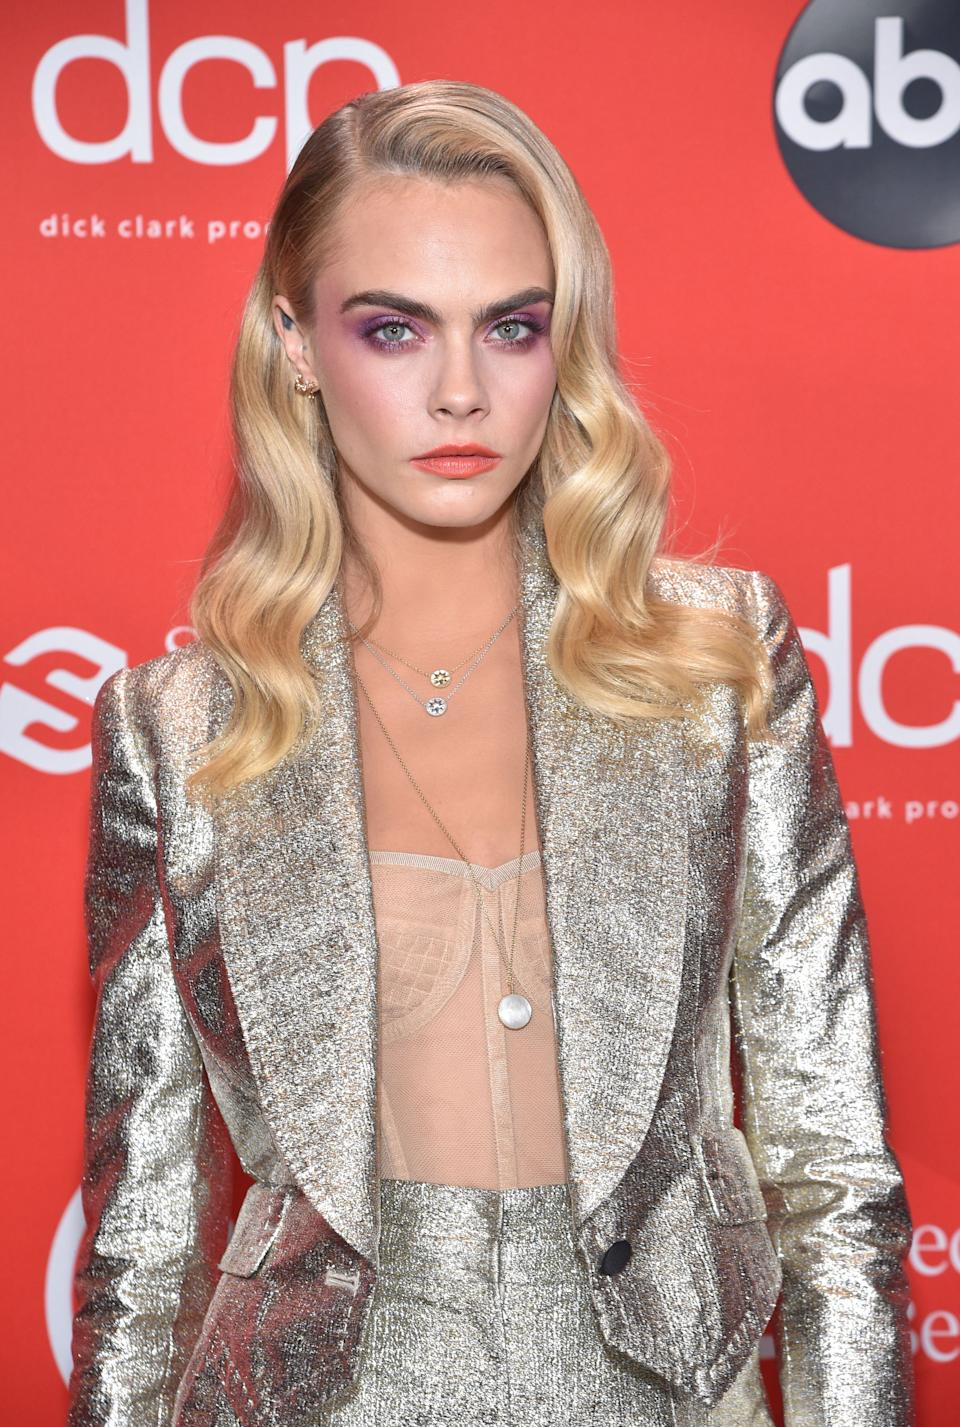 Cara Delevingne is nominated in the celebrity category. (ABC via Getty Images)